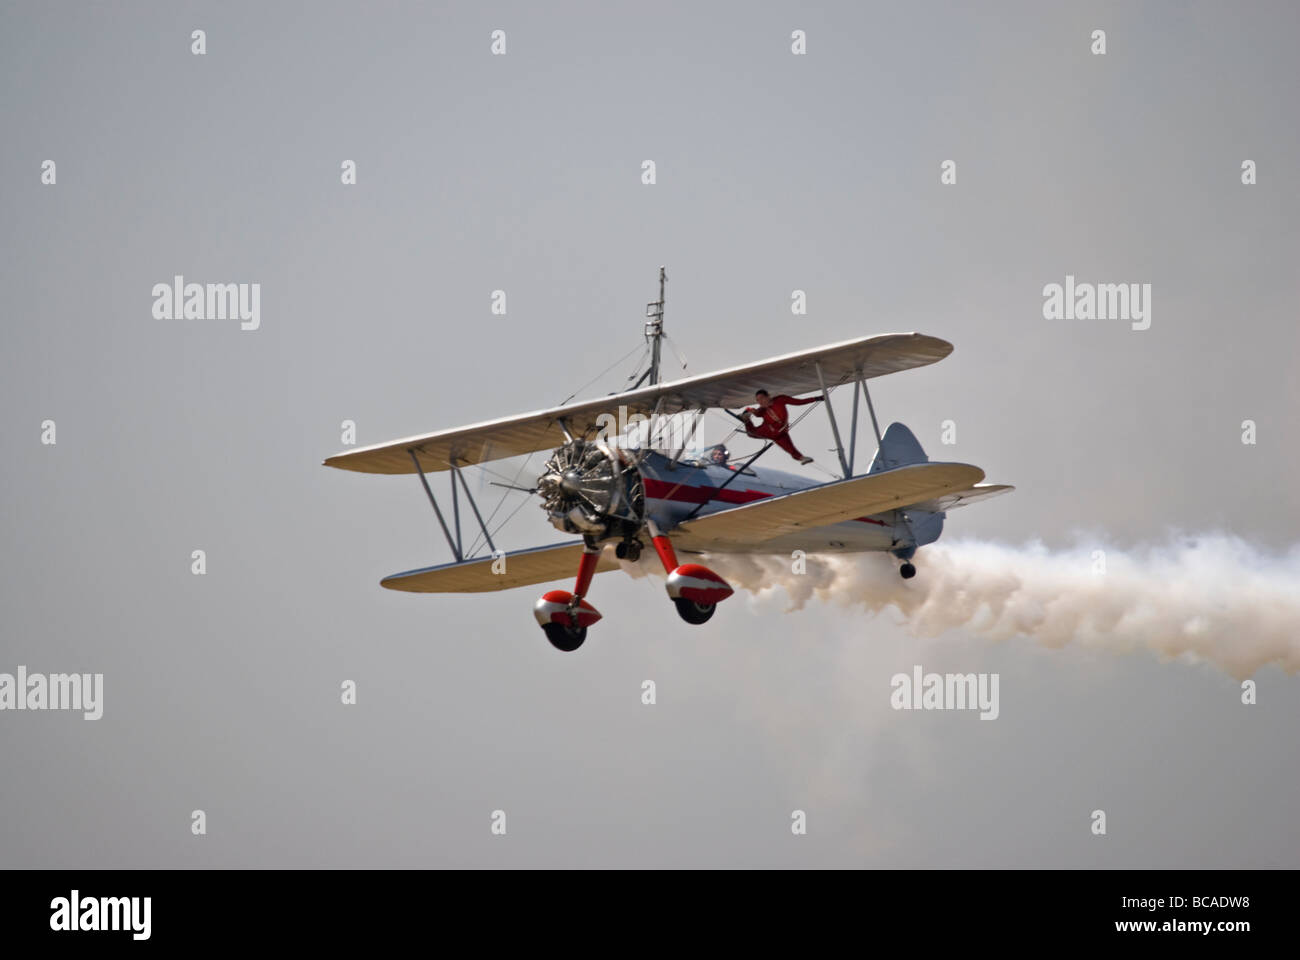 The team of 'Silver Wings Wingwalking' at an airshow - Stock Image